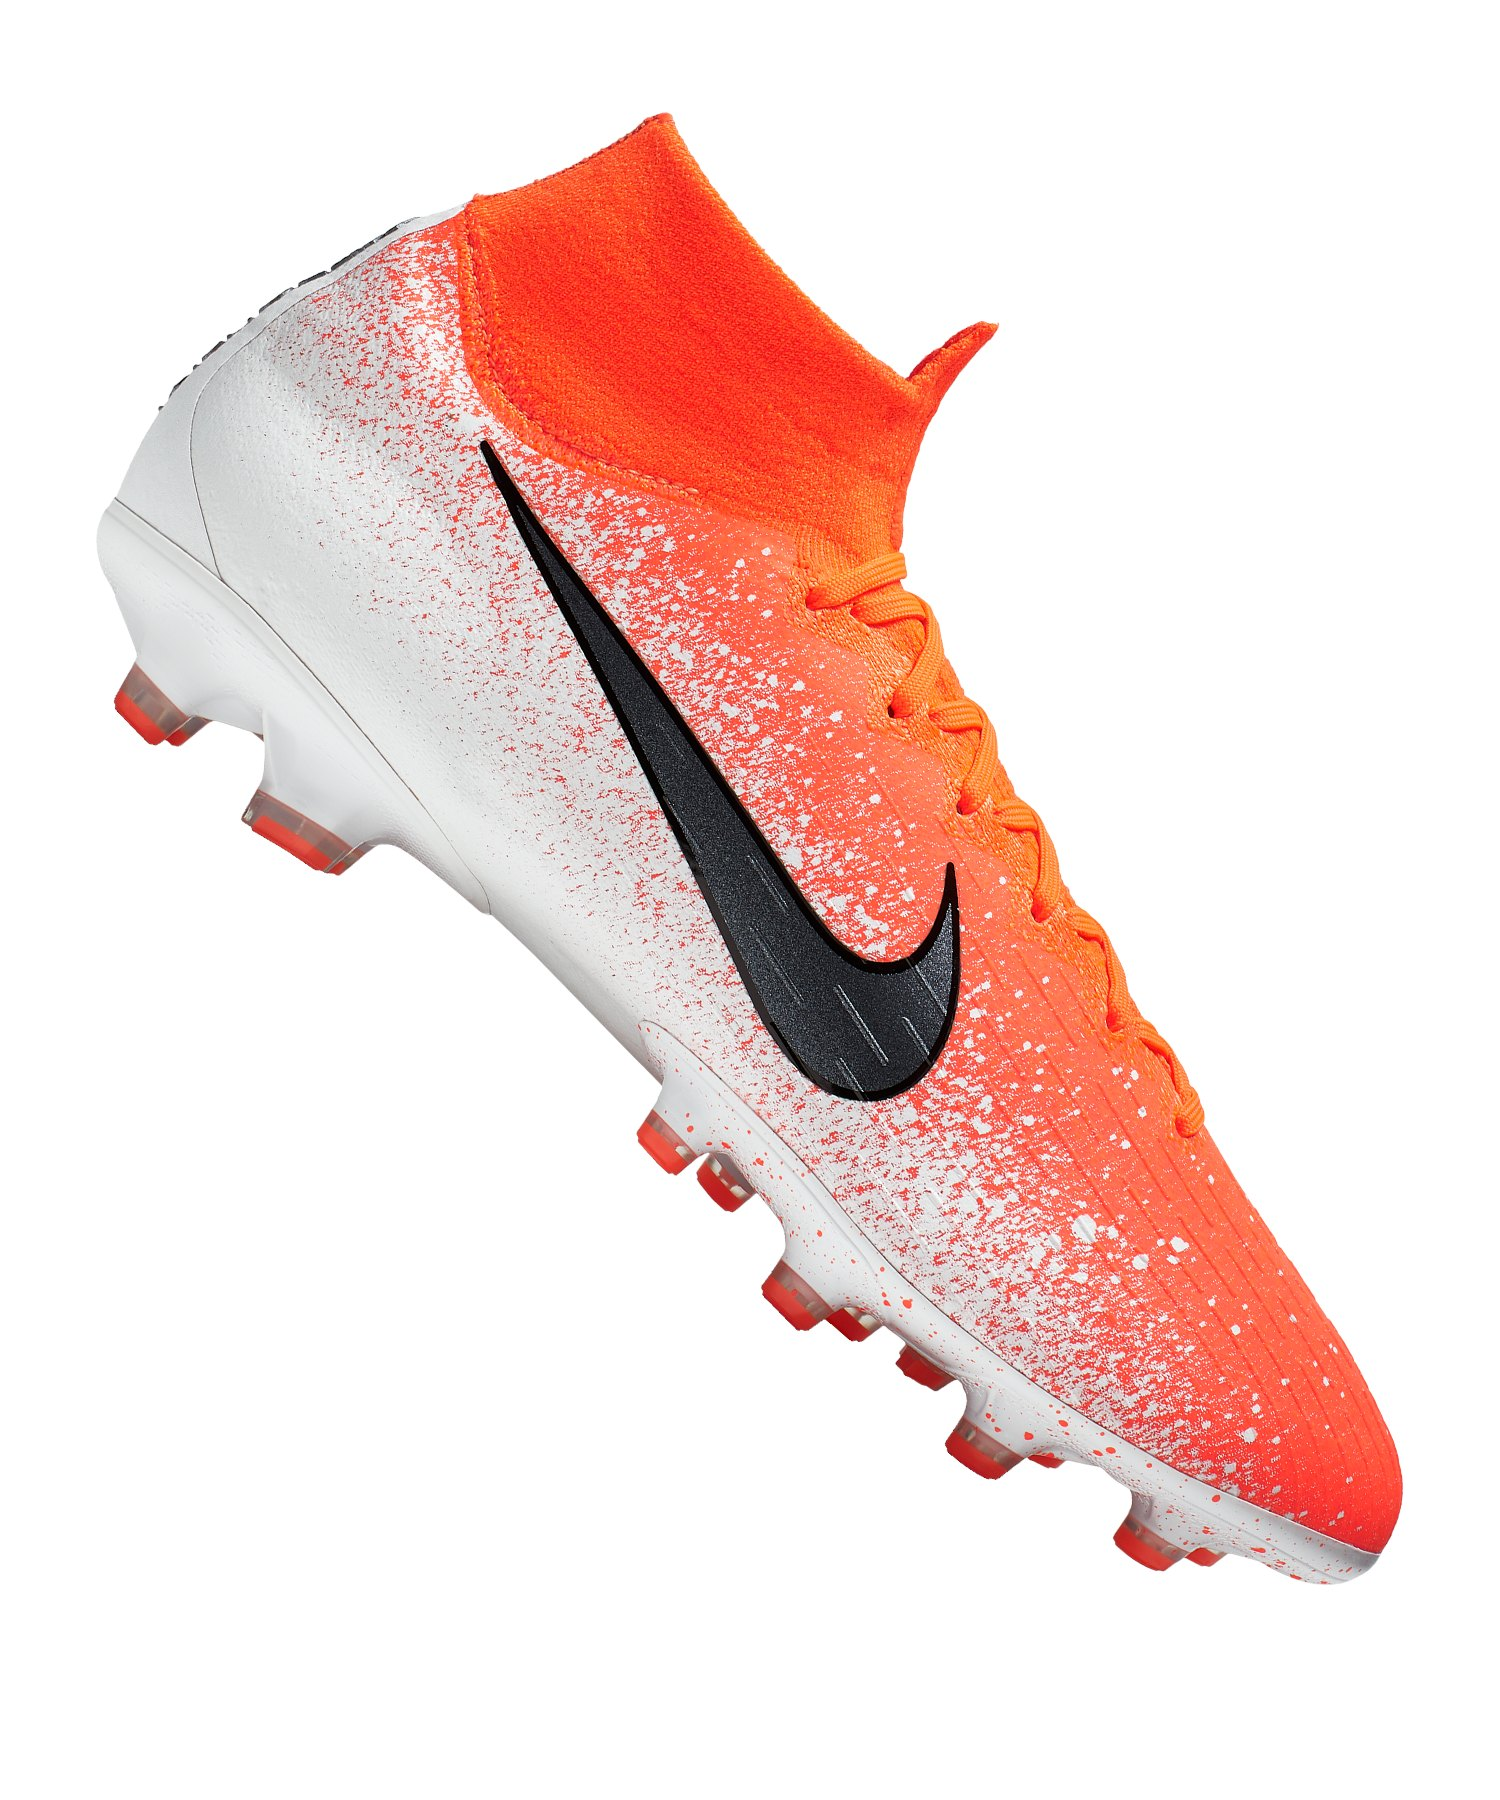 Nike Mercurial Superfly VI Elite AG-Pro F801 - Orange